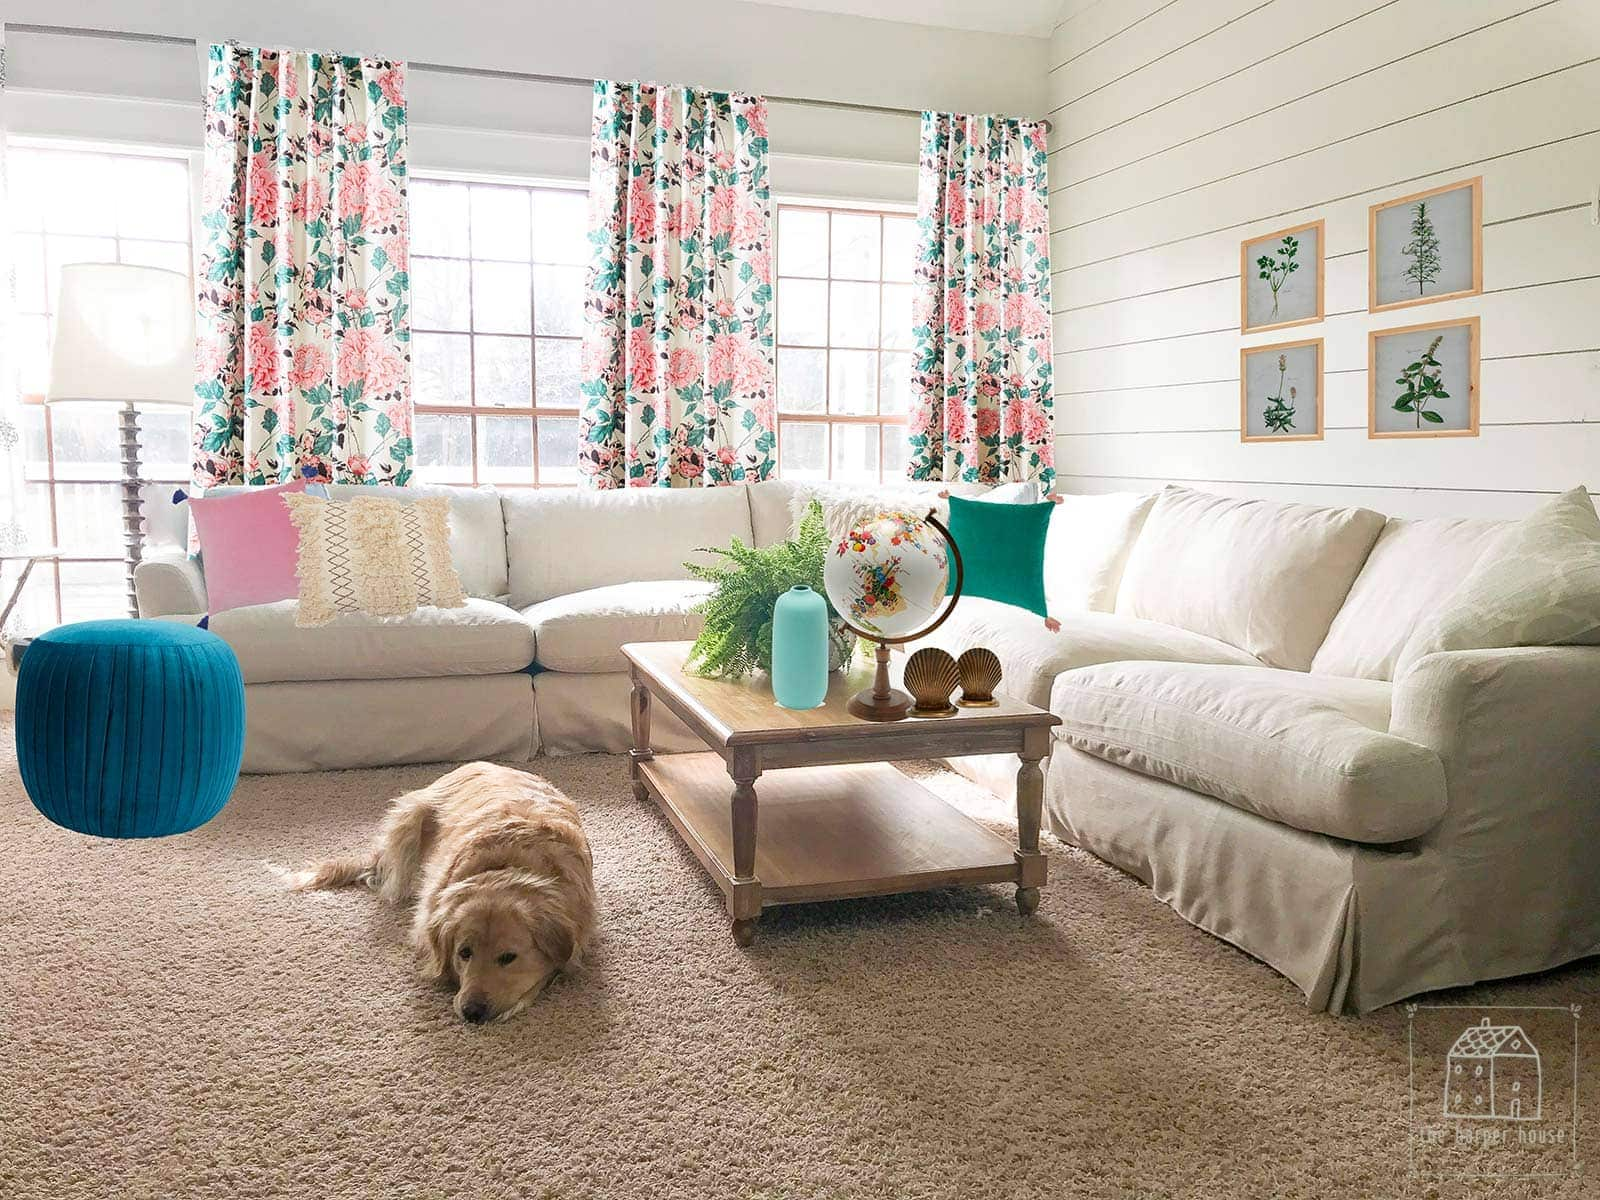 Photoshop mockup of living room using Drew Barrymore Flower Home items